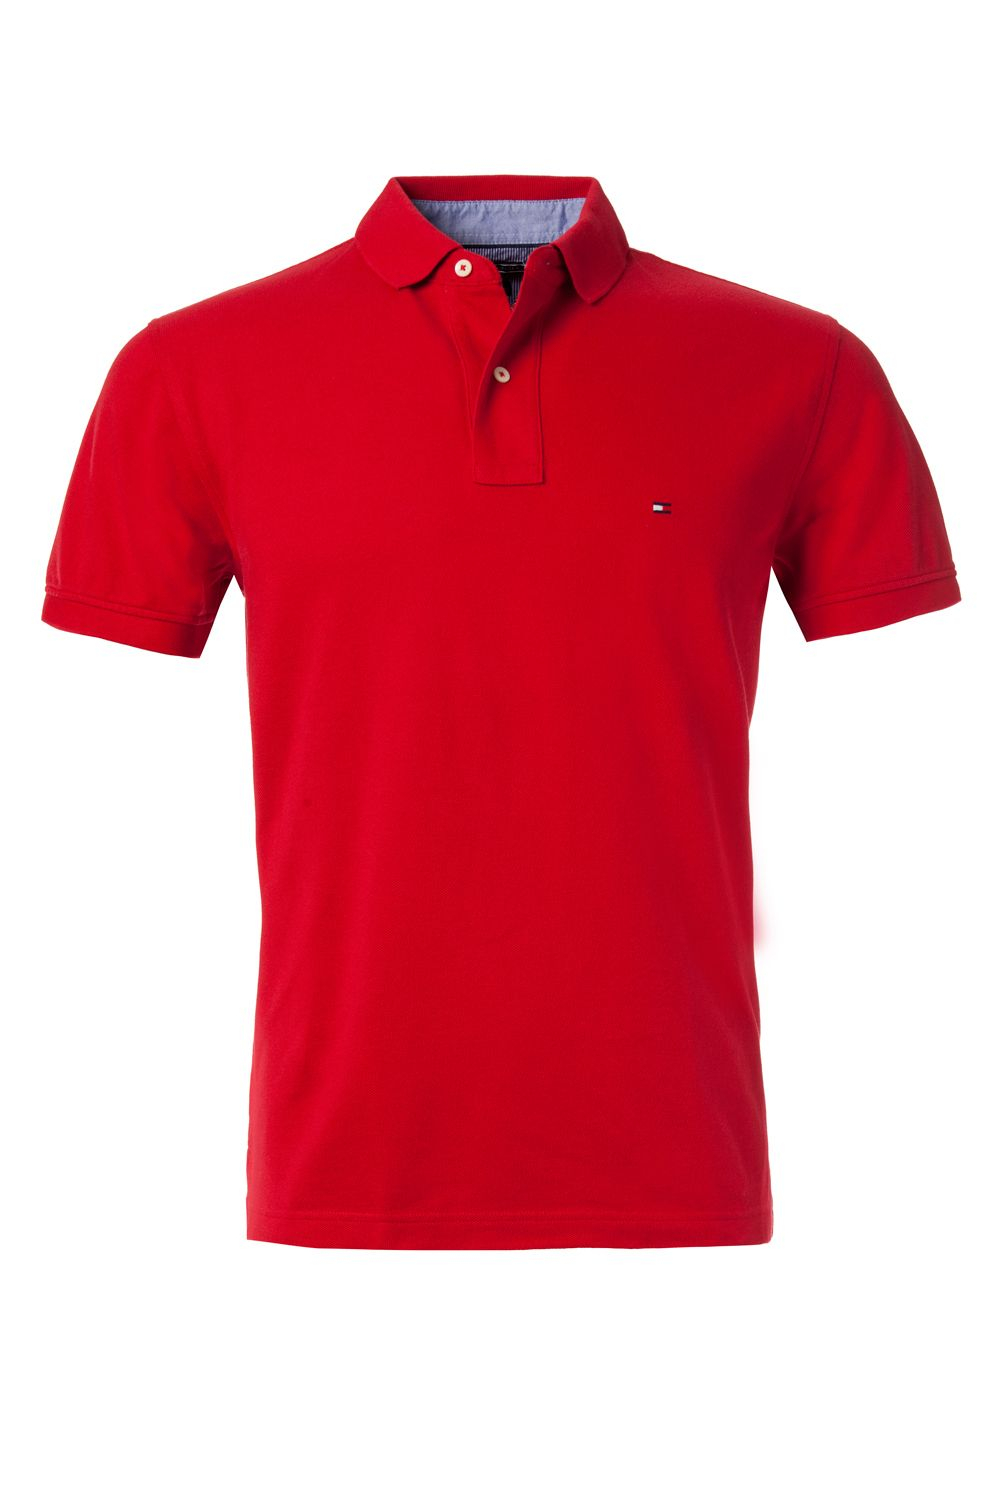 tommy hilfiger tommy short sleeve polo in red for men lyst. Black Bedroom Furniture Sets. Home Design Ideas